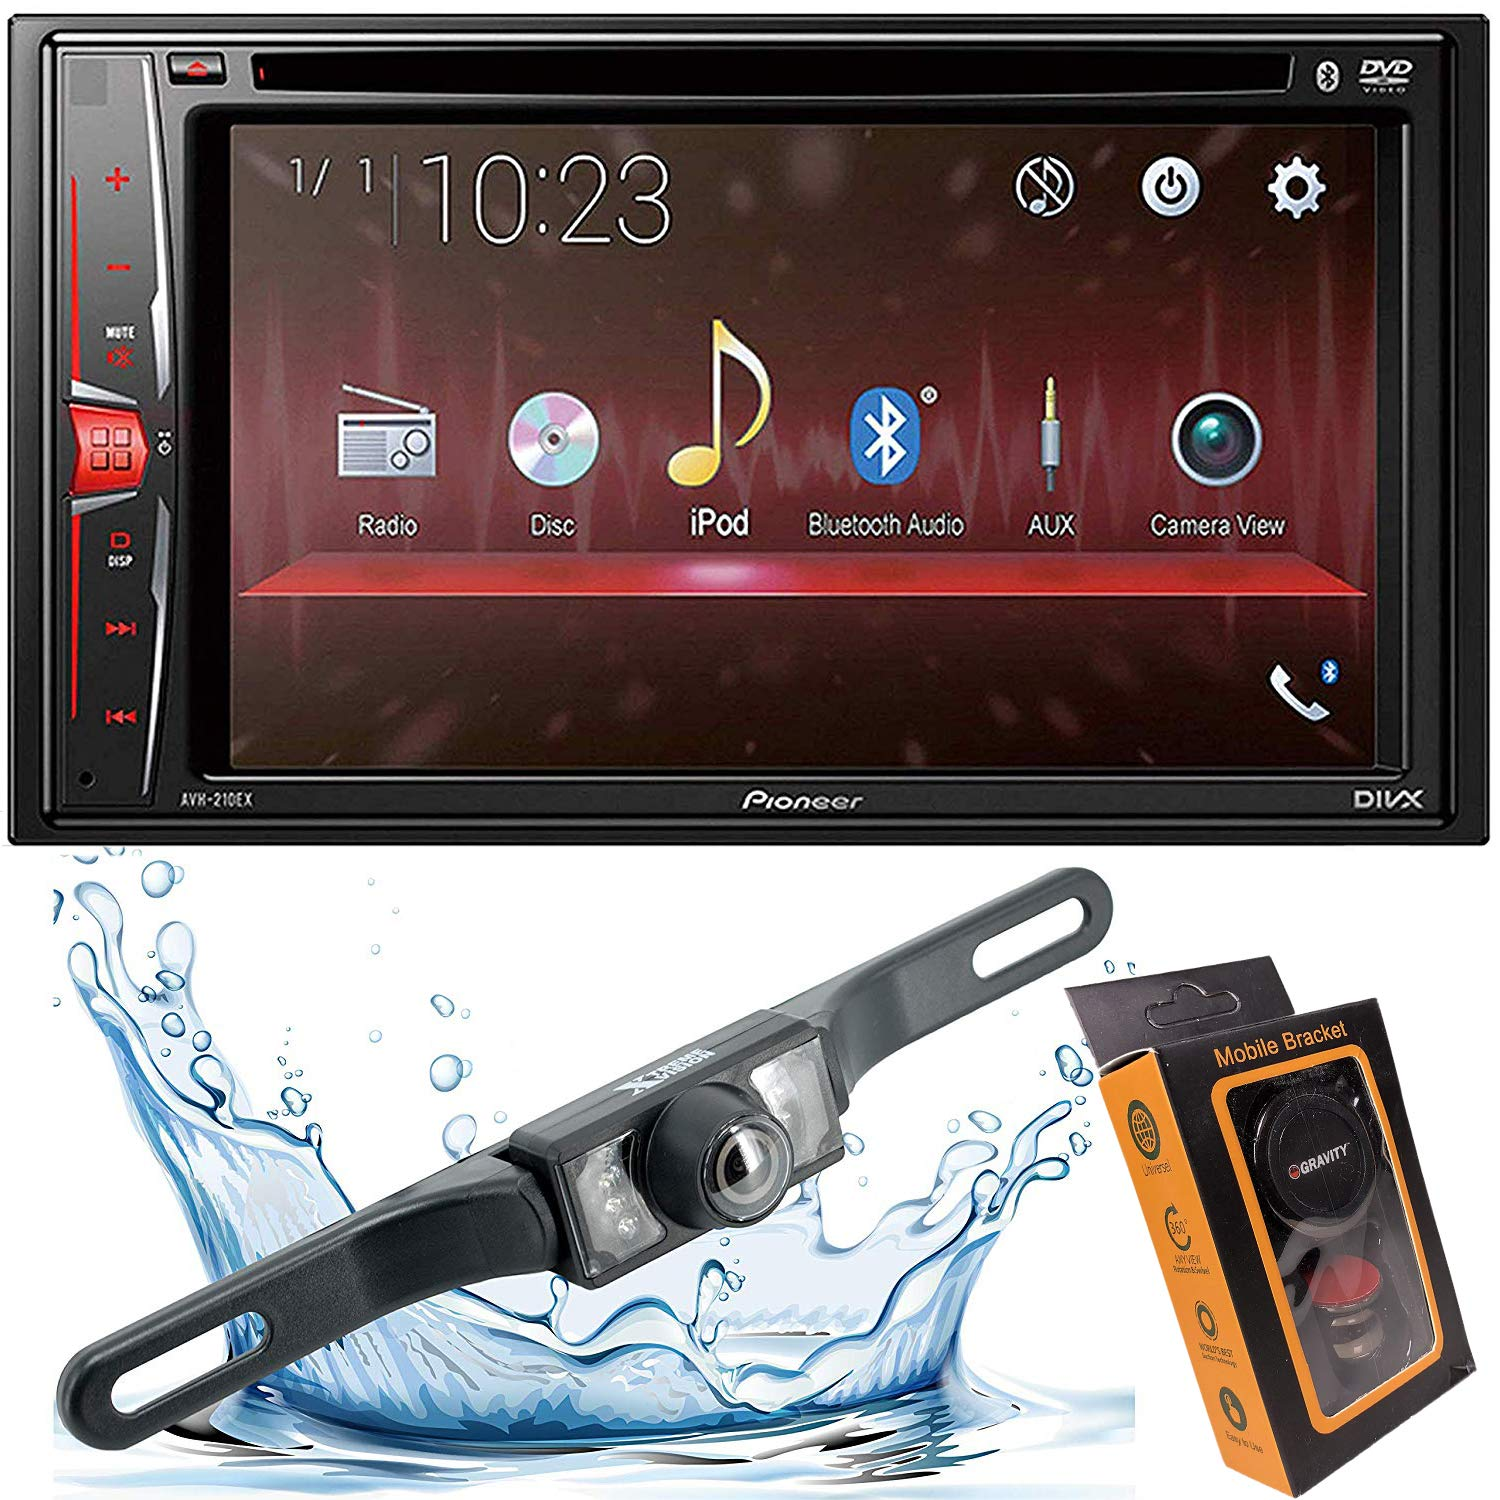 Pioneer AVH-X490BS Double Din Bluetooth In-Dash DVD CD Am FM Car Stereo Receiver with 7-Inch WVGA Display Sirius Xm-Ready